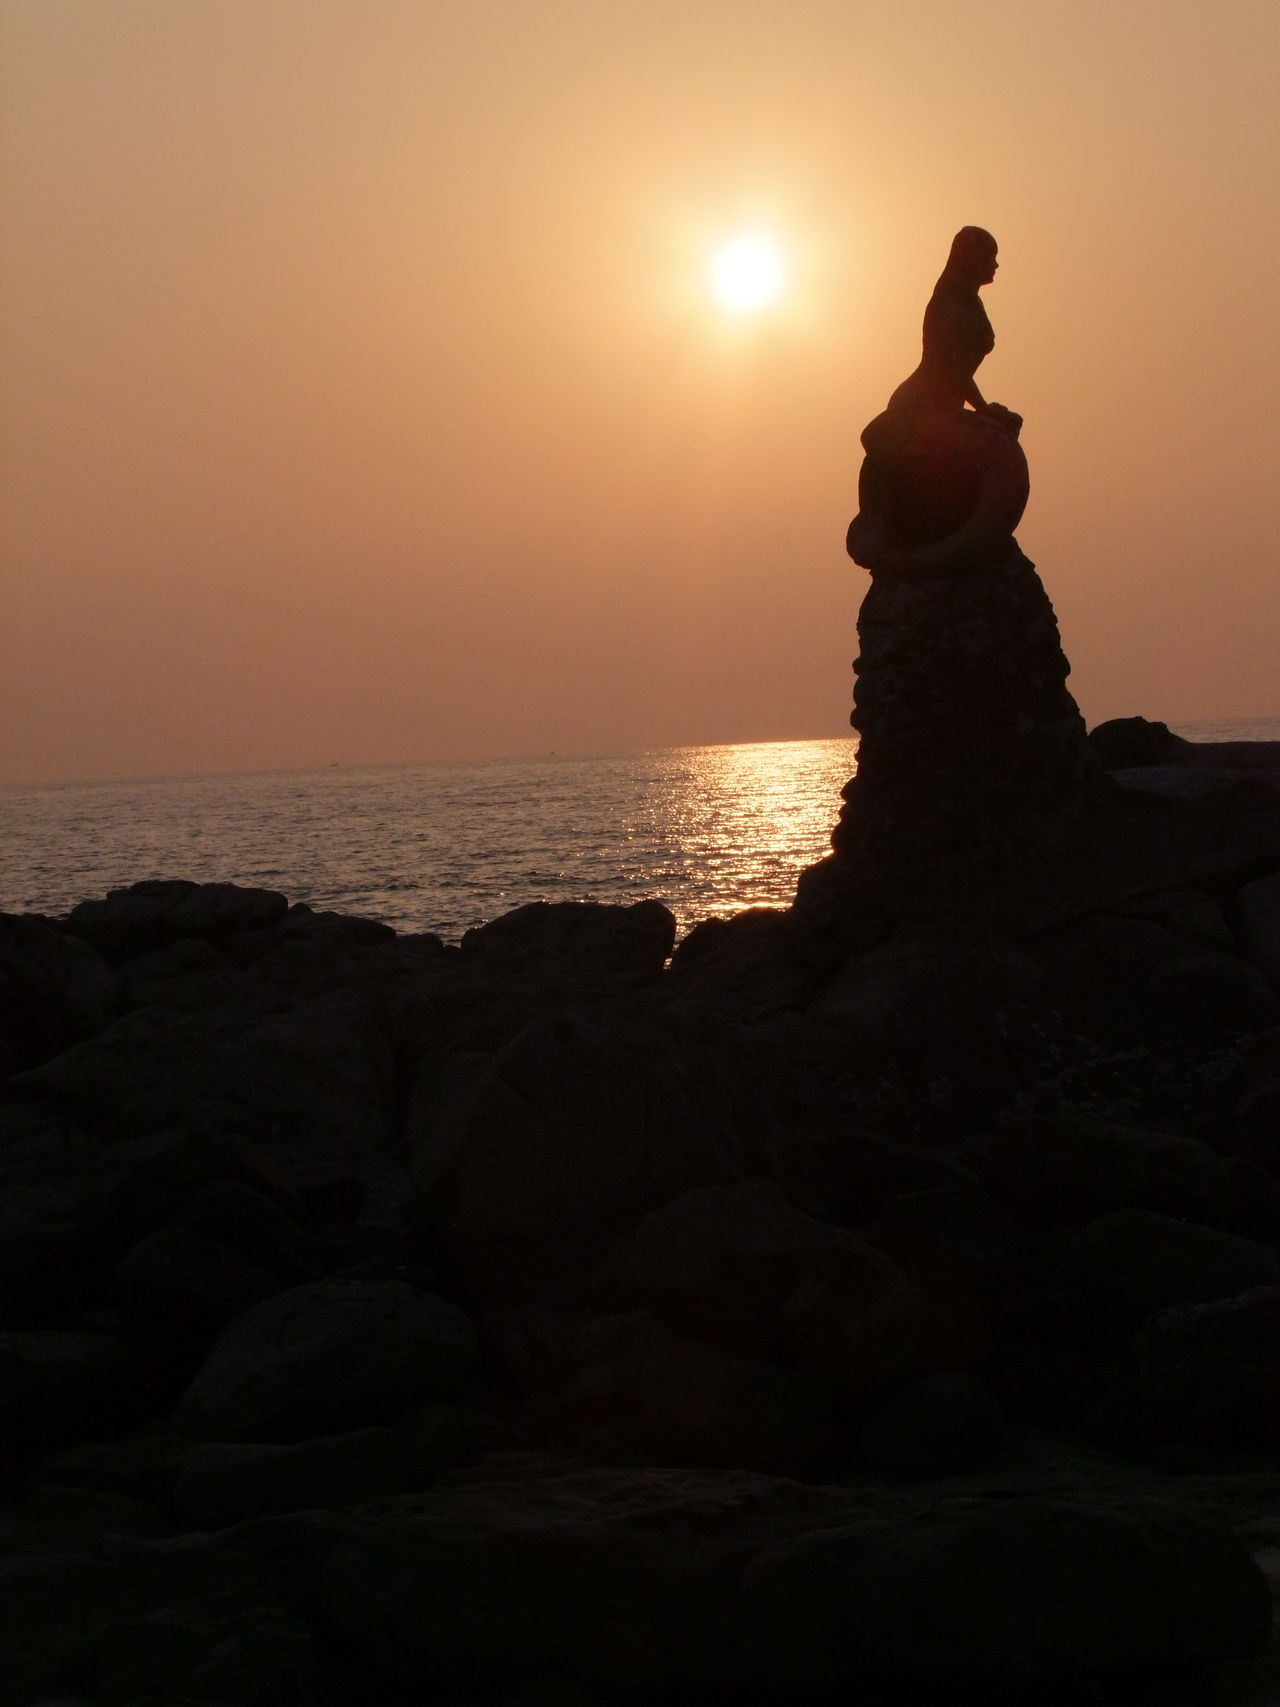 Mermaid on the Rocks at Sunset Beach Beauty In Nature Beauty In Nature Composition Full Frame Mermaid Statue Myanmar Nature Ngapali Ngapali Beach No People Orange Sky Sunset Outdoor Photography Reflection In The Water Rock - Object Sea Silhouette Statue Sunset Tourist Attraction  Travel Destination Water Yellow Sun Yellow Sunset Zen-like